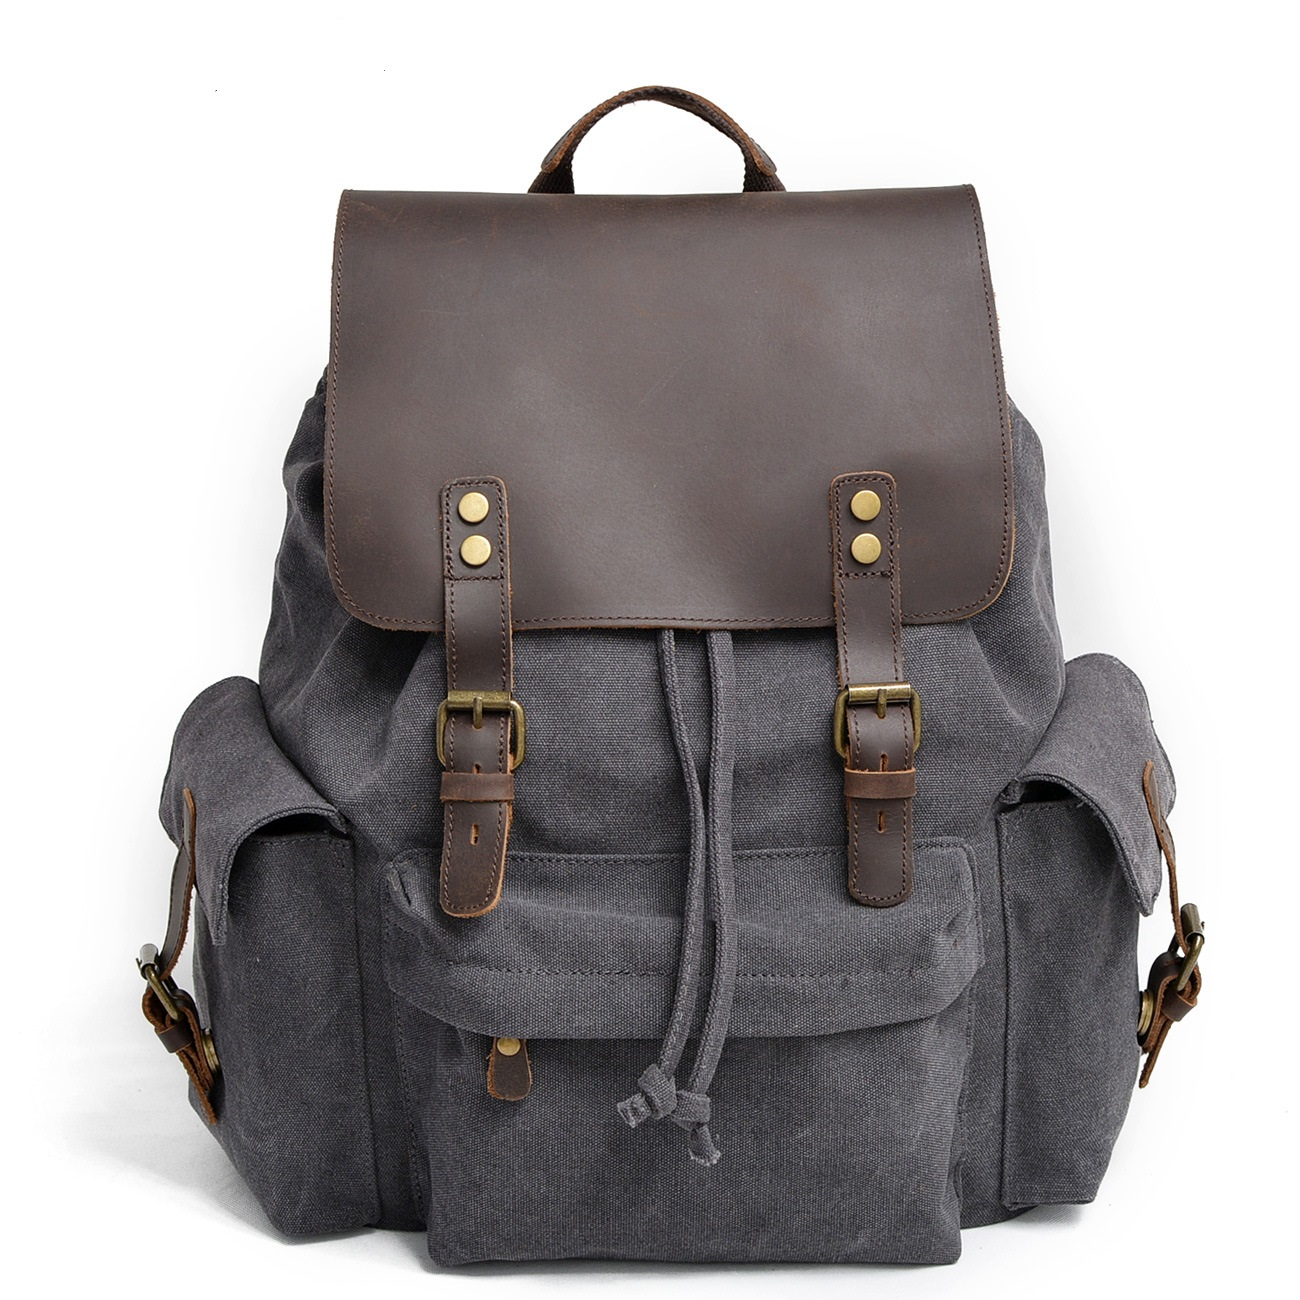 9151F Canvas Shoulder Bag leisure Mountaineering Bag With Genuine Leather Canvas Men Backpack